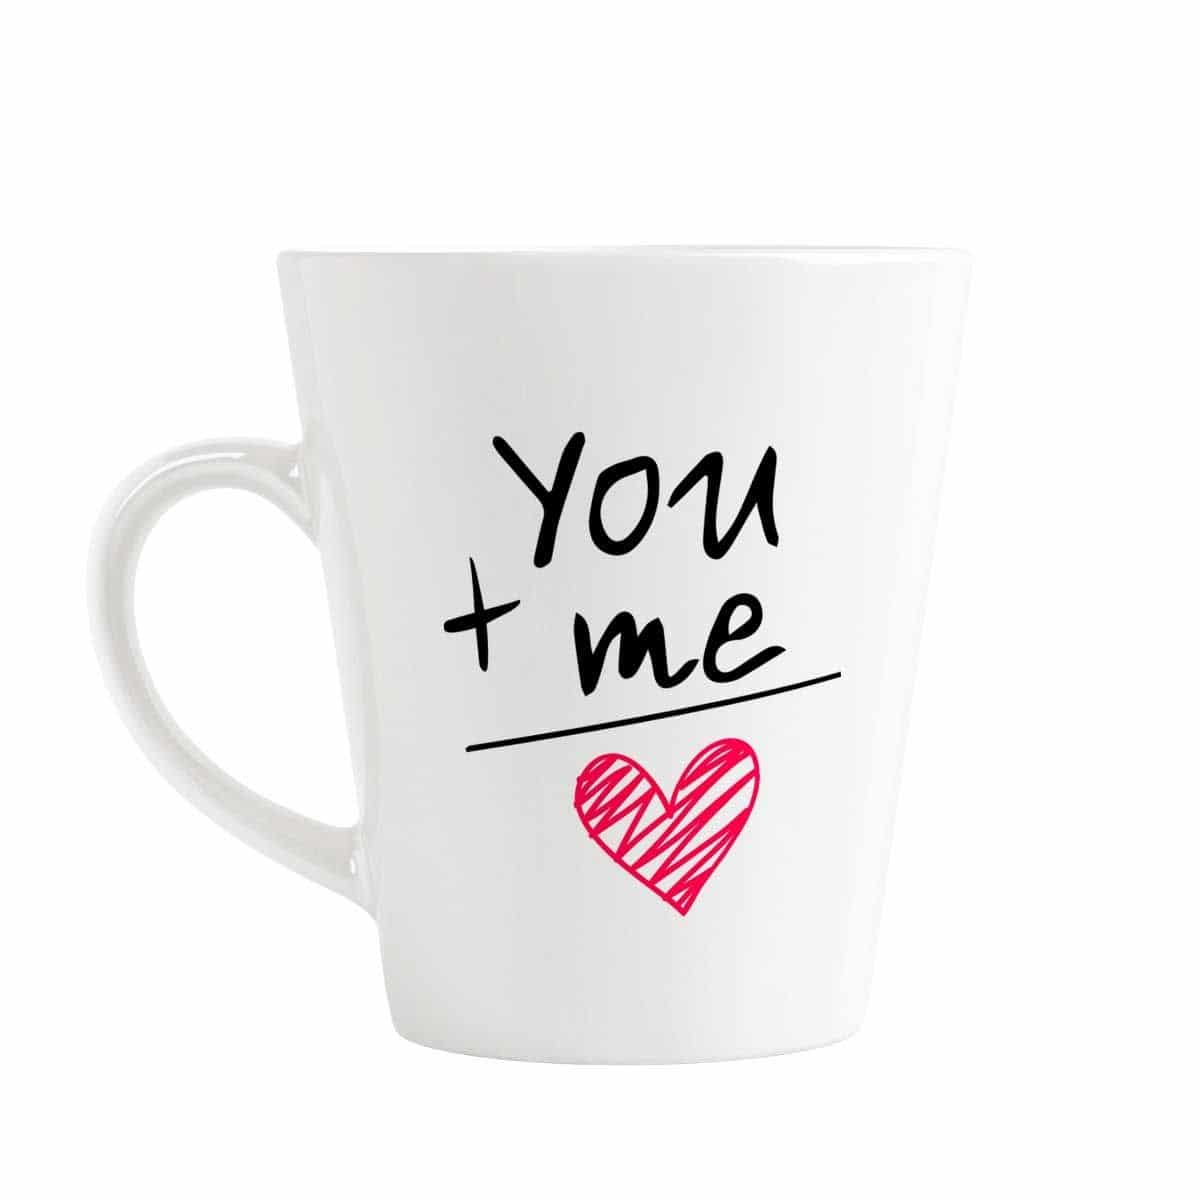 YOU + ME = 💞 Conical Coffee Mug @ Rs. 349/- ☕ 👉 Cash On Delivery Available 👉 Free Shipping  #YouandMe #Conical #Coffee #Mug #GiftIdeas #GiftForHer #GiftForHim #OffersKraft